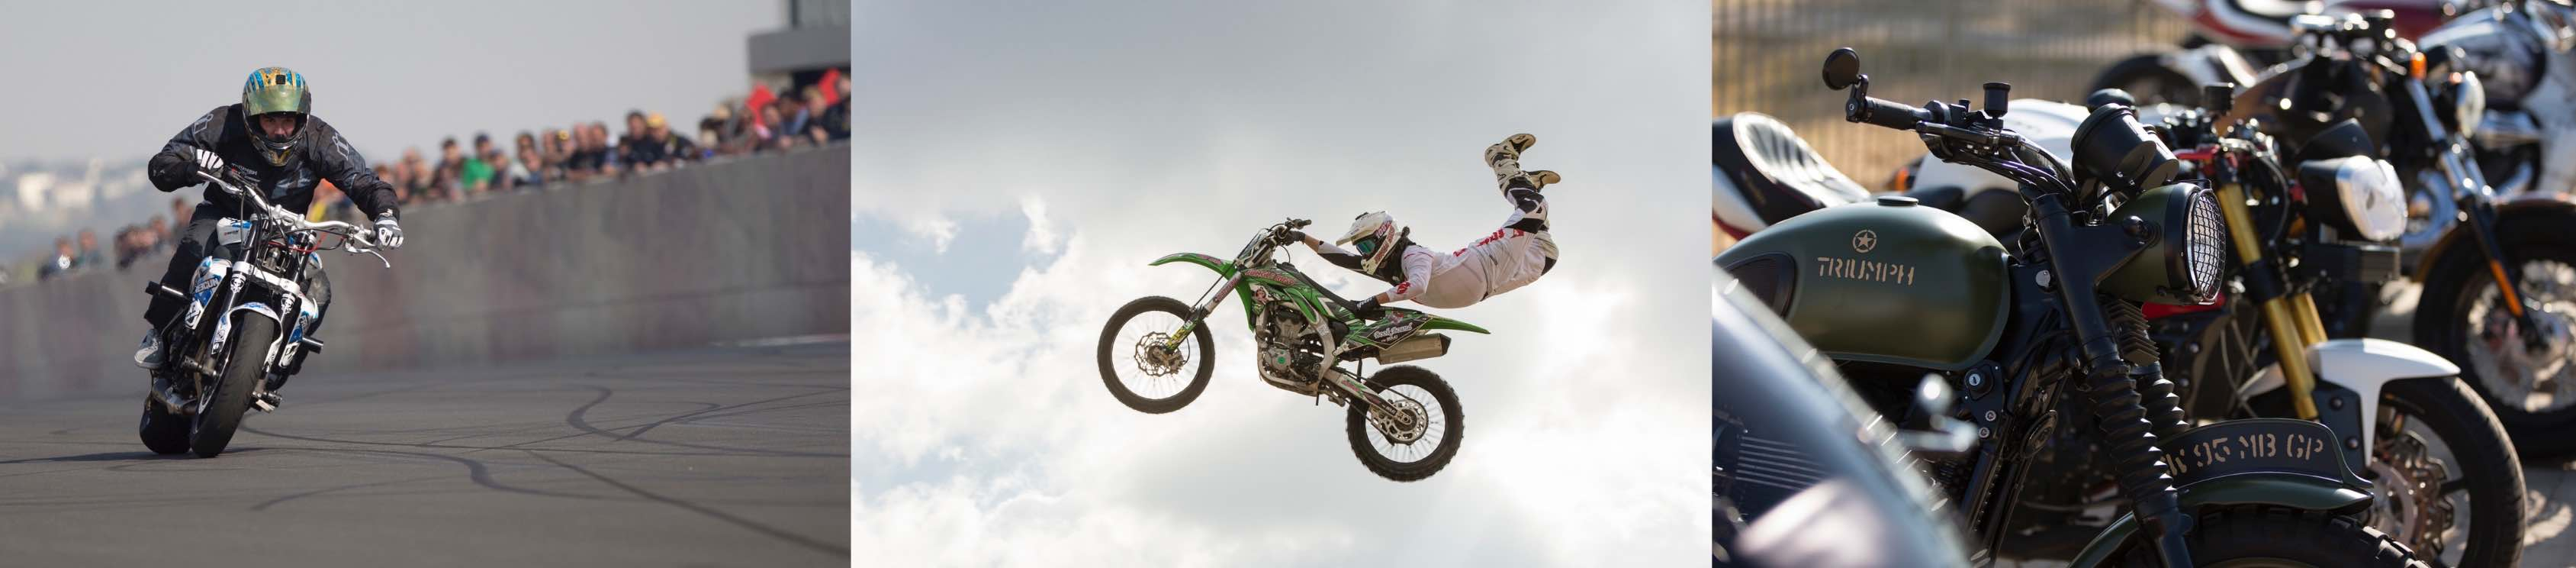 Some of the action festival goers will experience at the South Africa Bike Festival